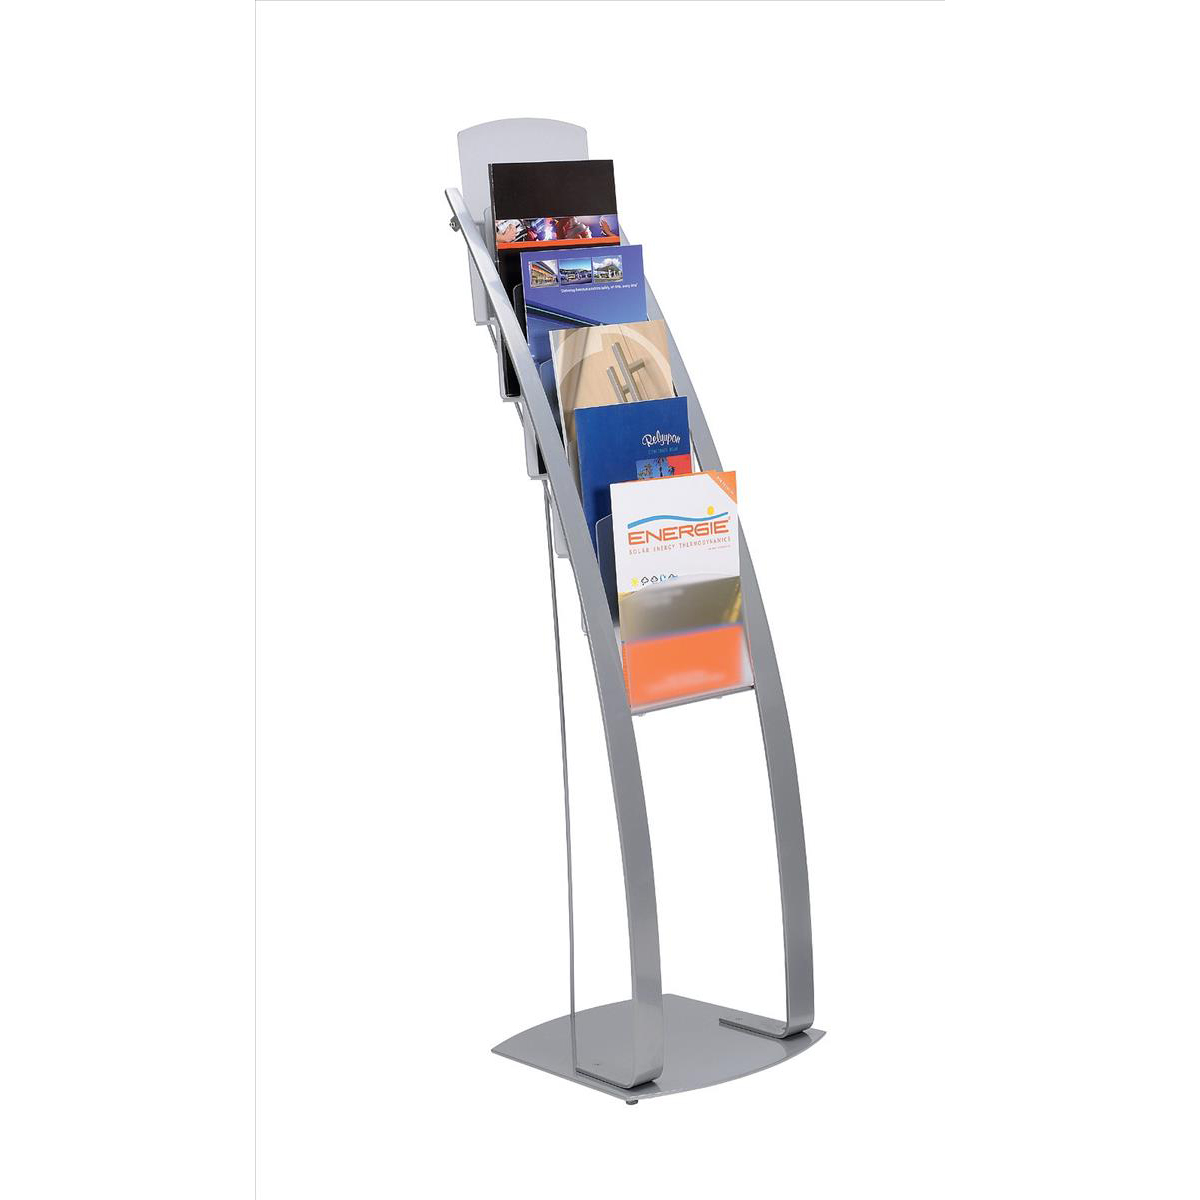 Deflecto Contemporary Literature Display Flr Stand 6x A4 Pkts 375x380x1260mm Slv Ref DE693145